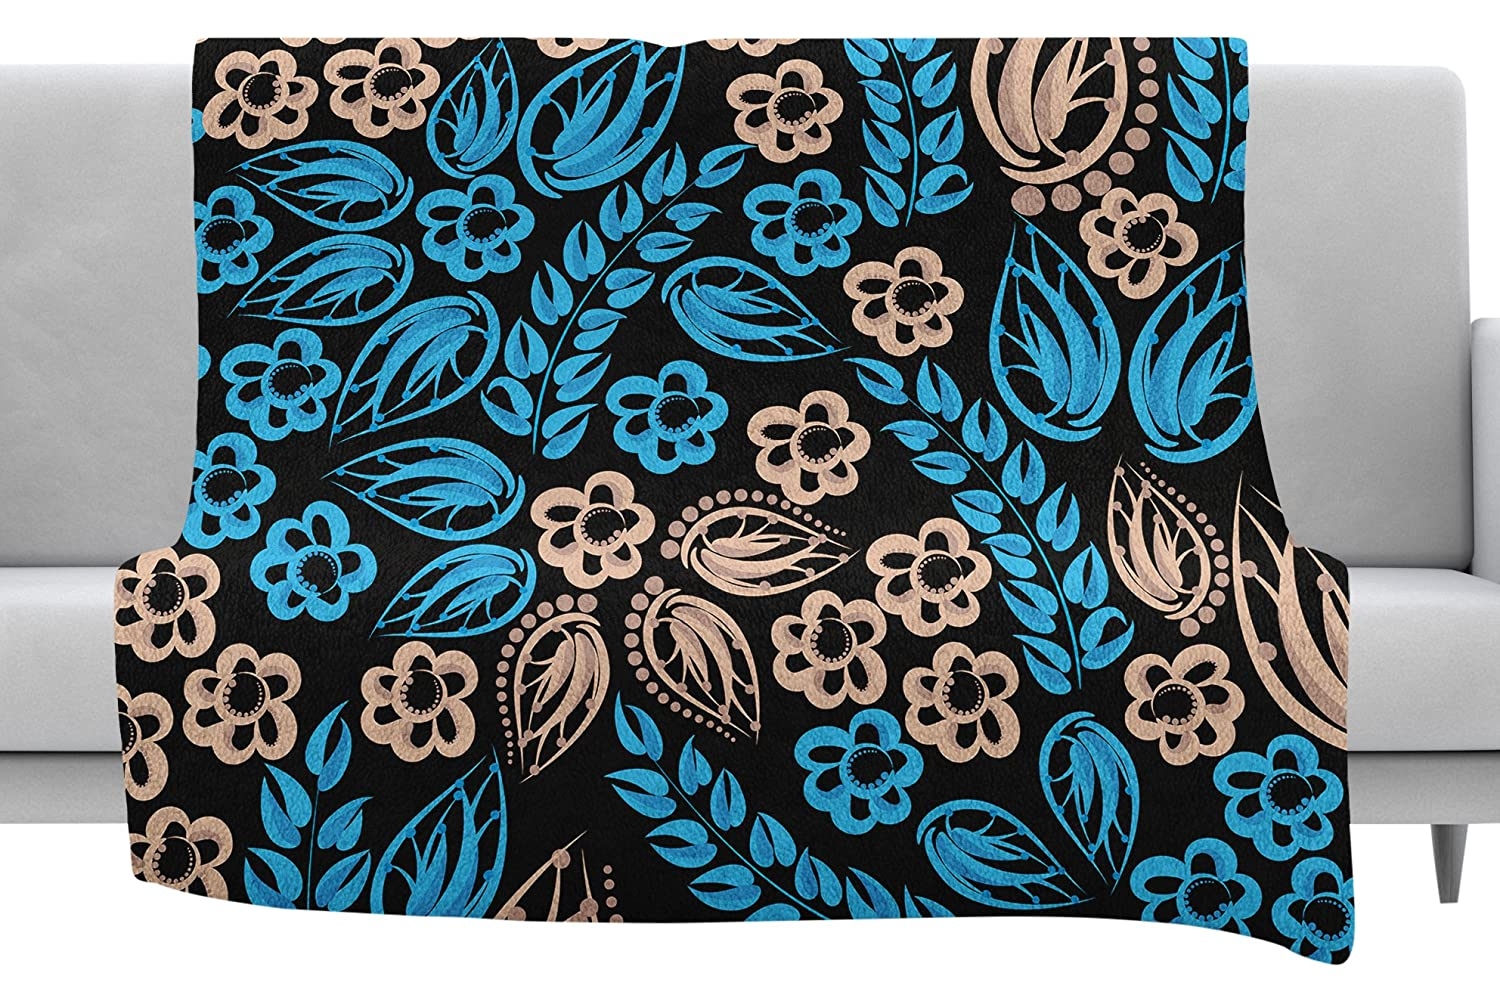 Kess InHouse Maria Bazarova Blue Flowers Black Floral Throw 60 x 40 Fleece Blankets